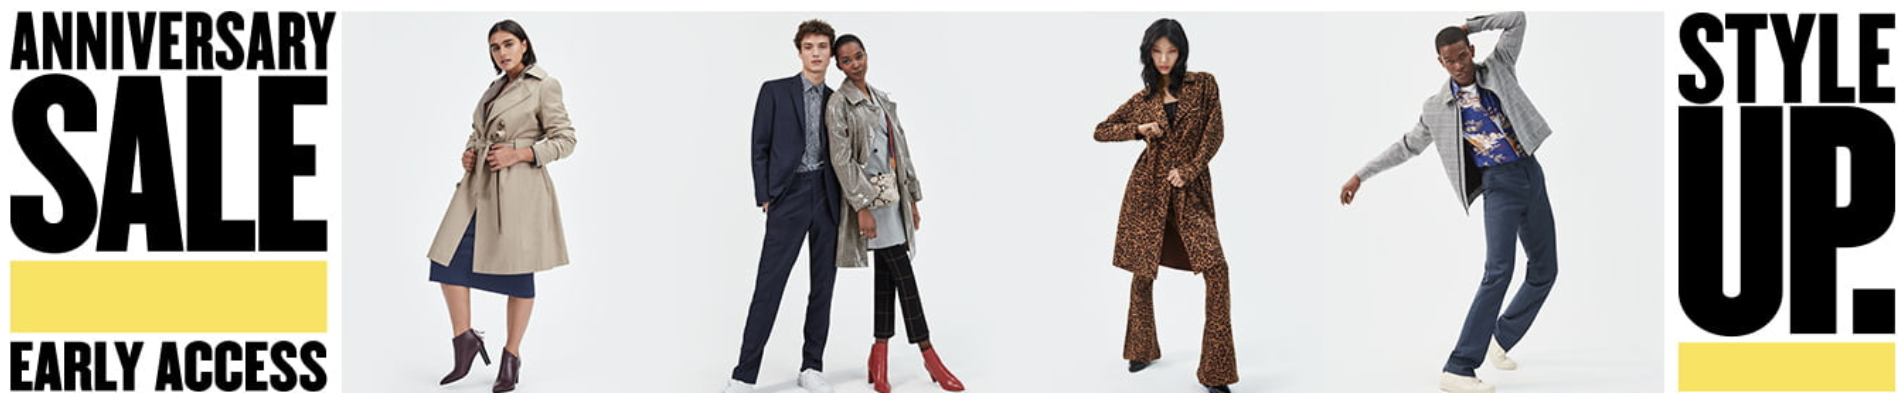 Tips on How to Shop the 2019 Nordstrom Anniversary SALE by popular fashion blog, Dressed to Kill: image of an Nordstrom anniversary sale flyer.